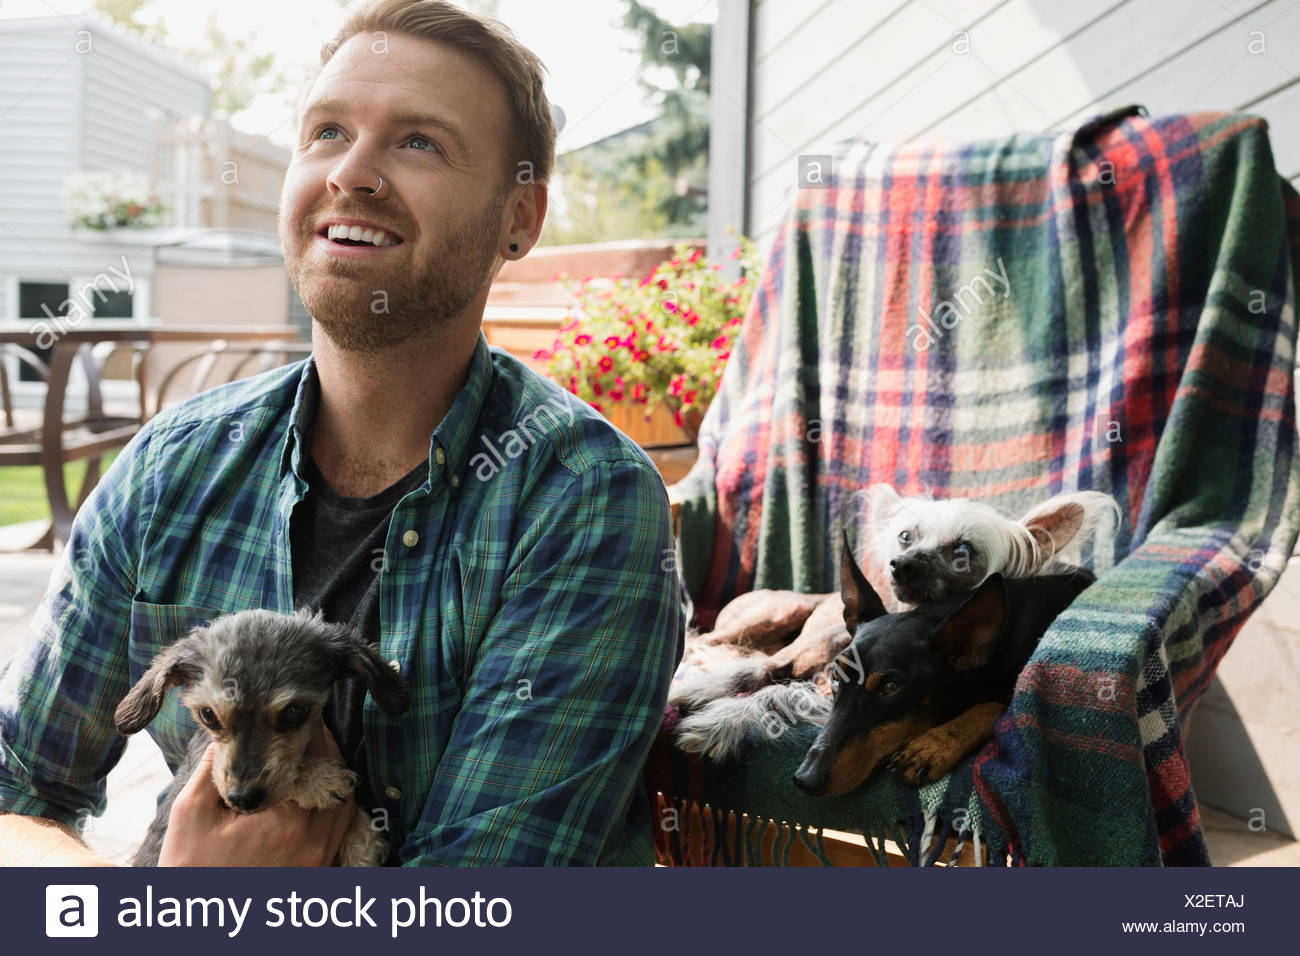 Smiling man with dogs on patio - Stock Image